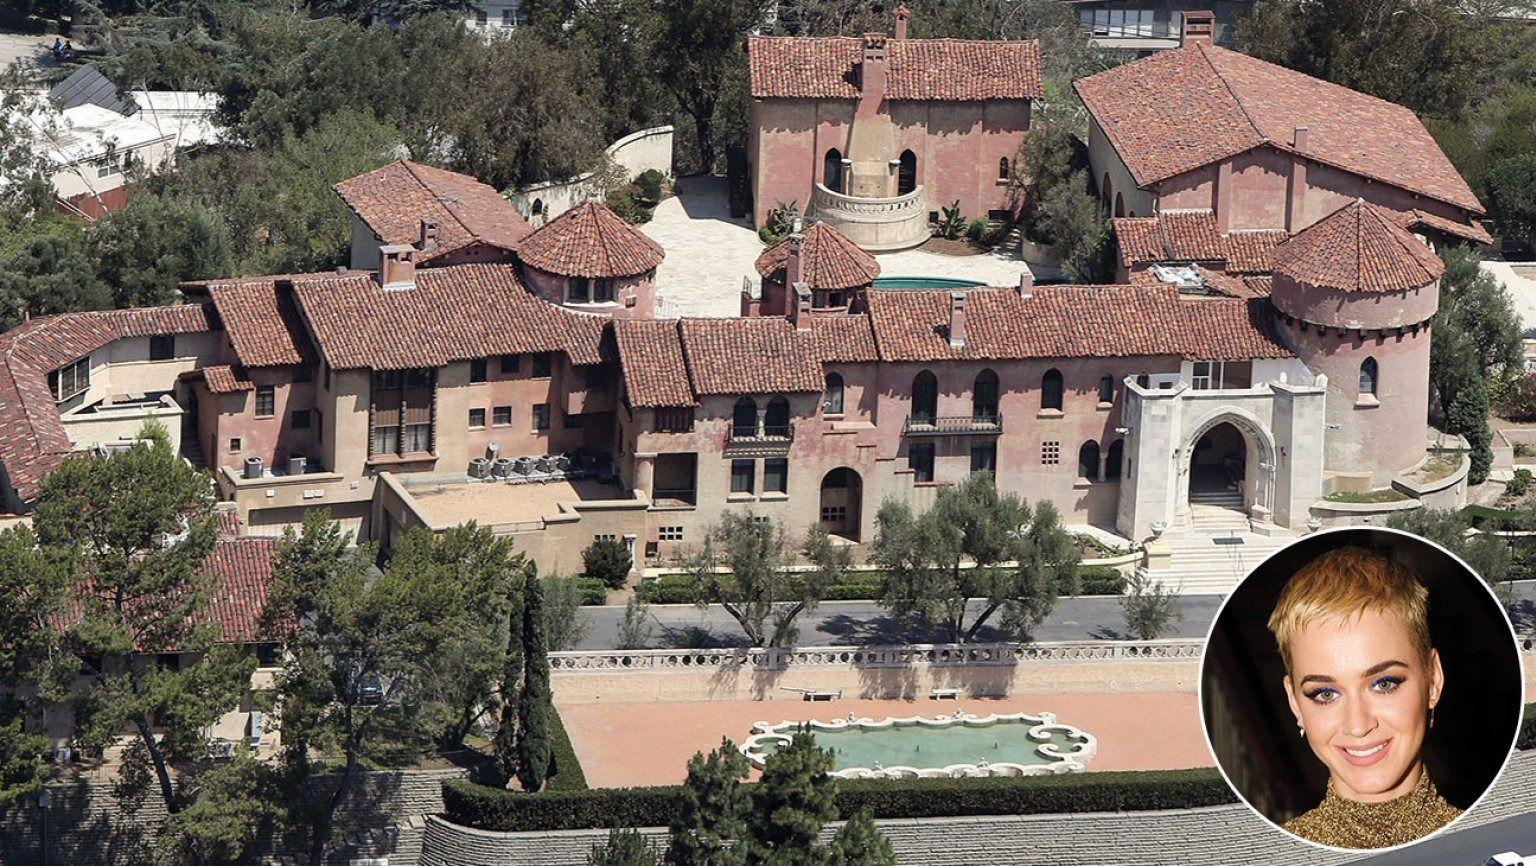 Katy Perry S Crib Is Sweet Celebrity Houses Celebrity Mansions Los Angeles Homes